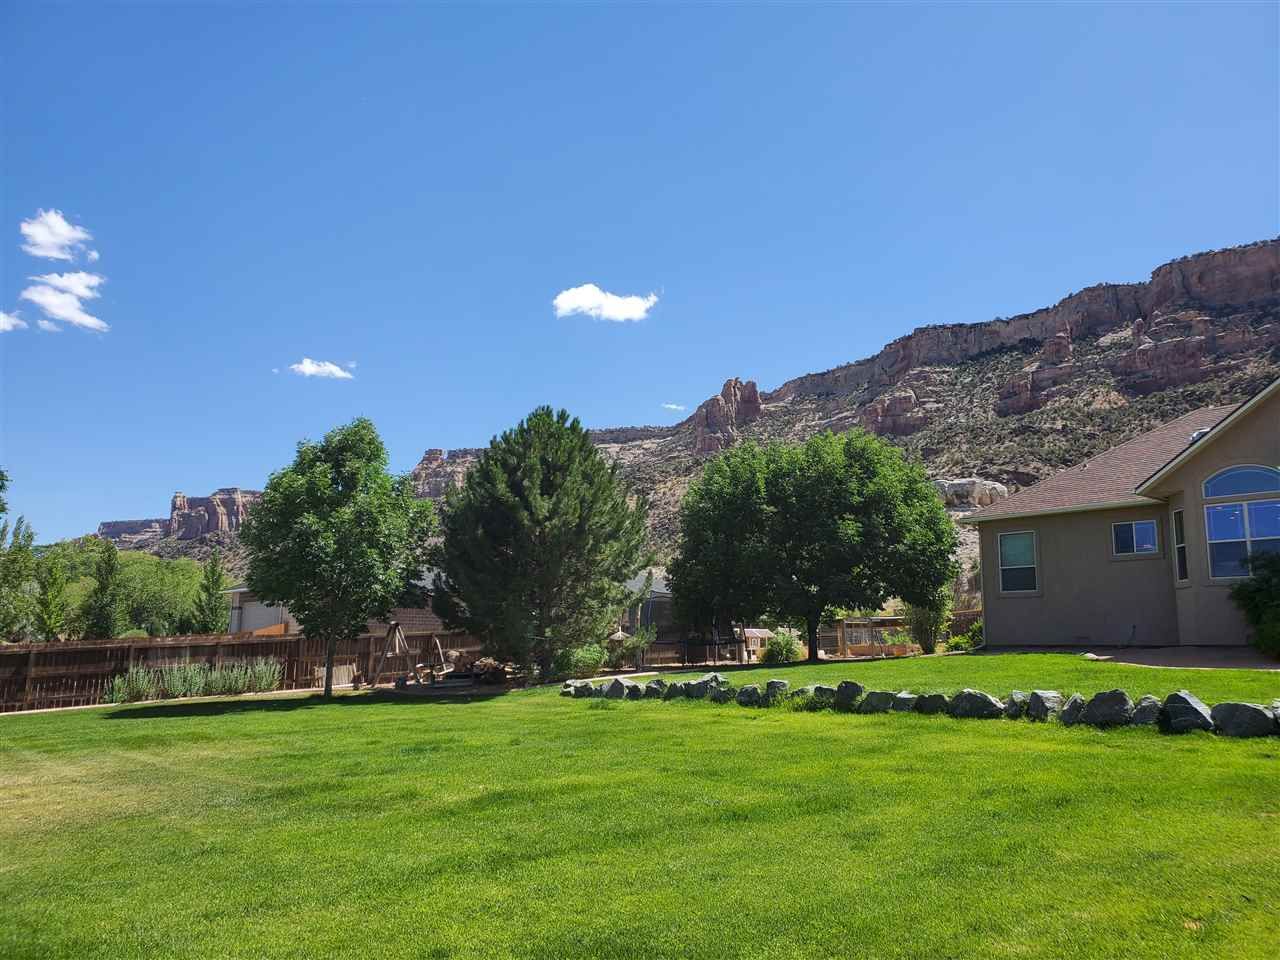 1950 South Broadway, Grand Junction, CO 81507